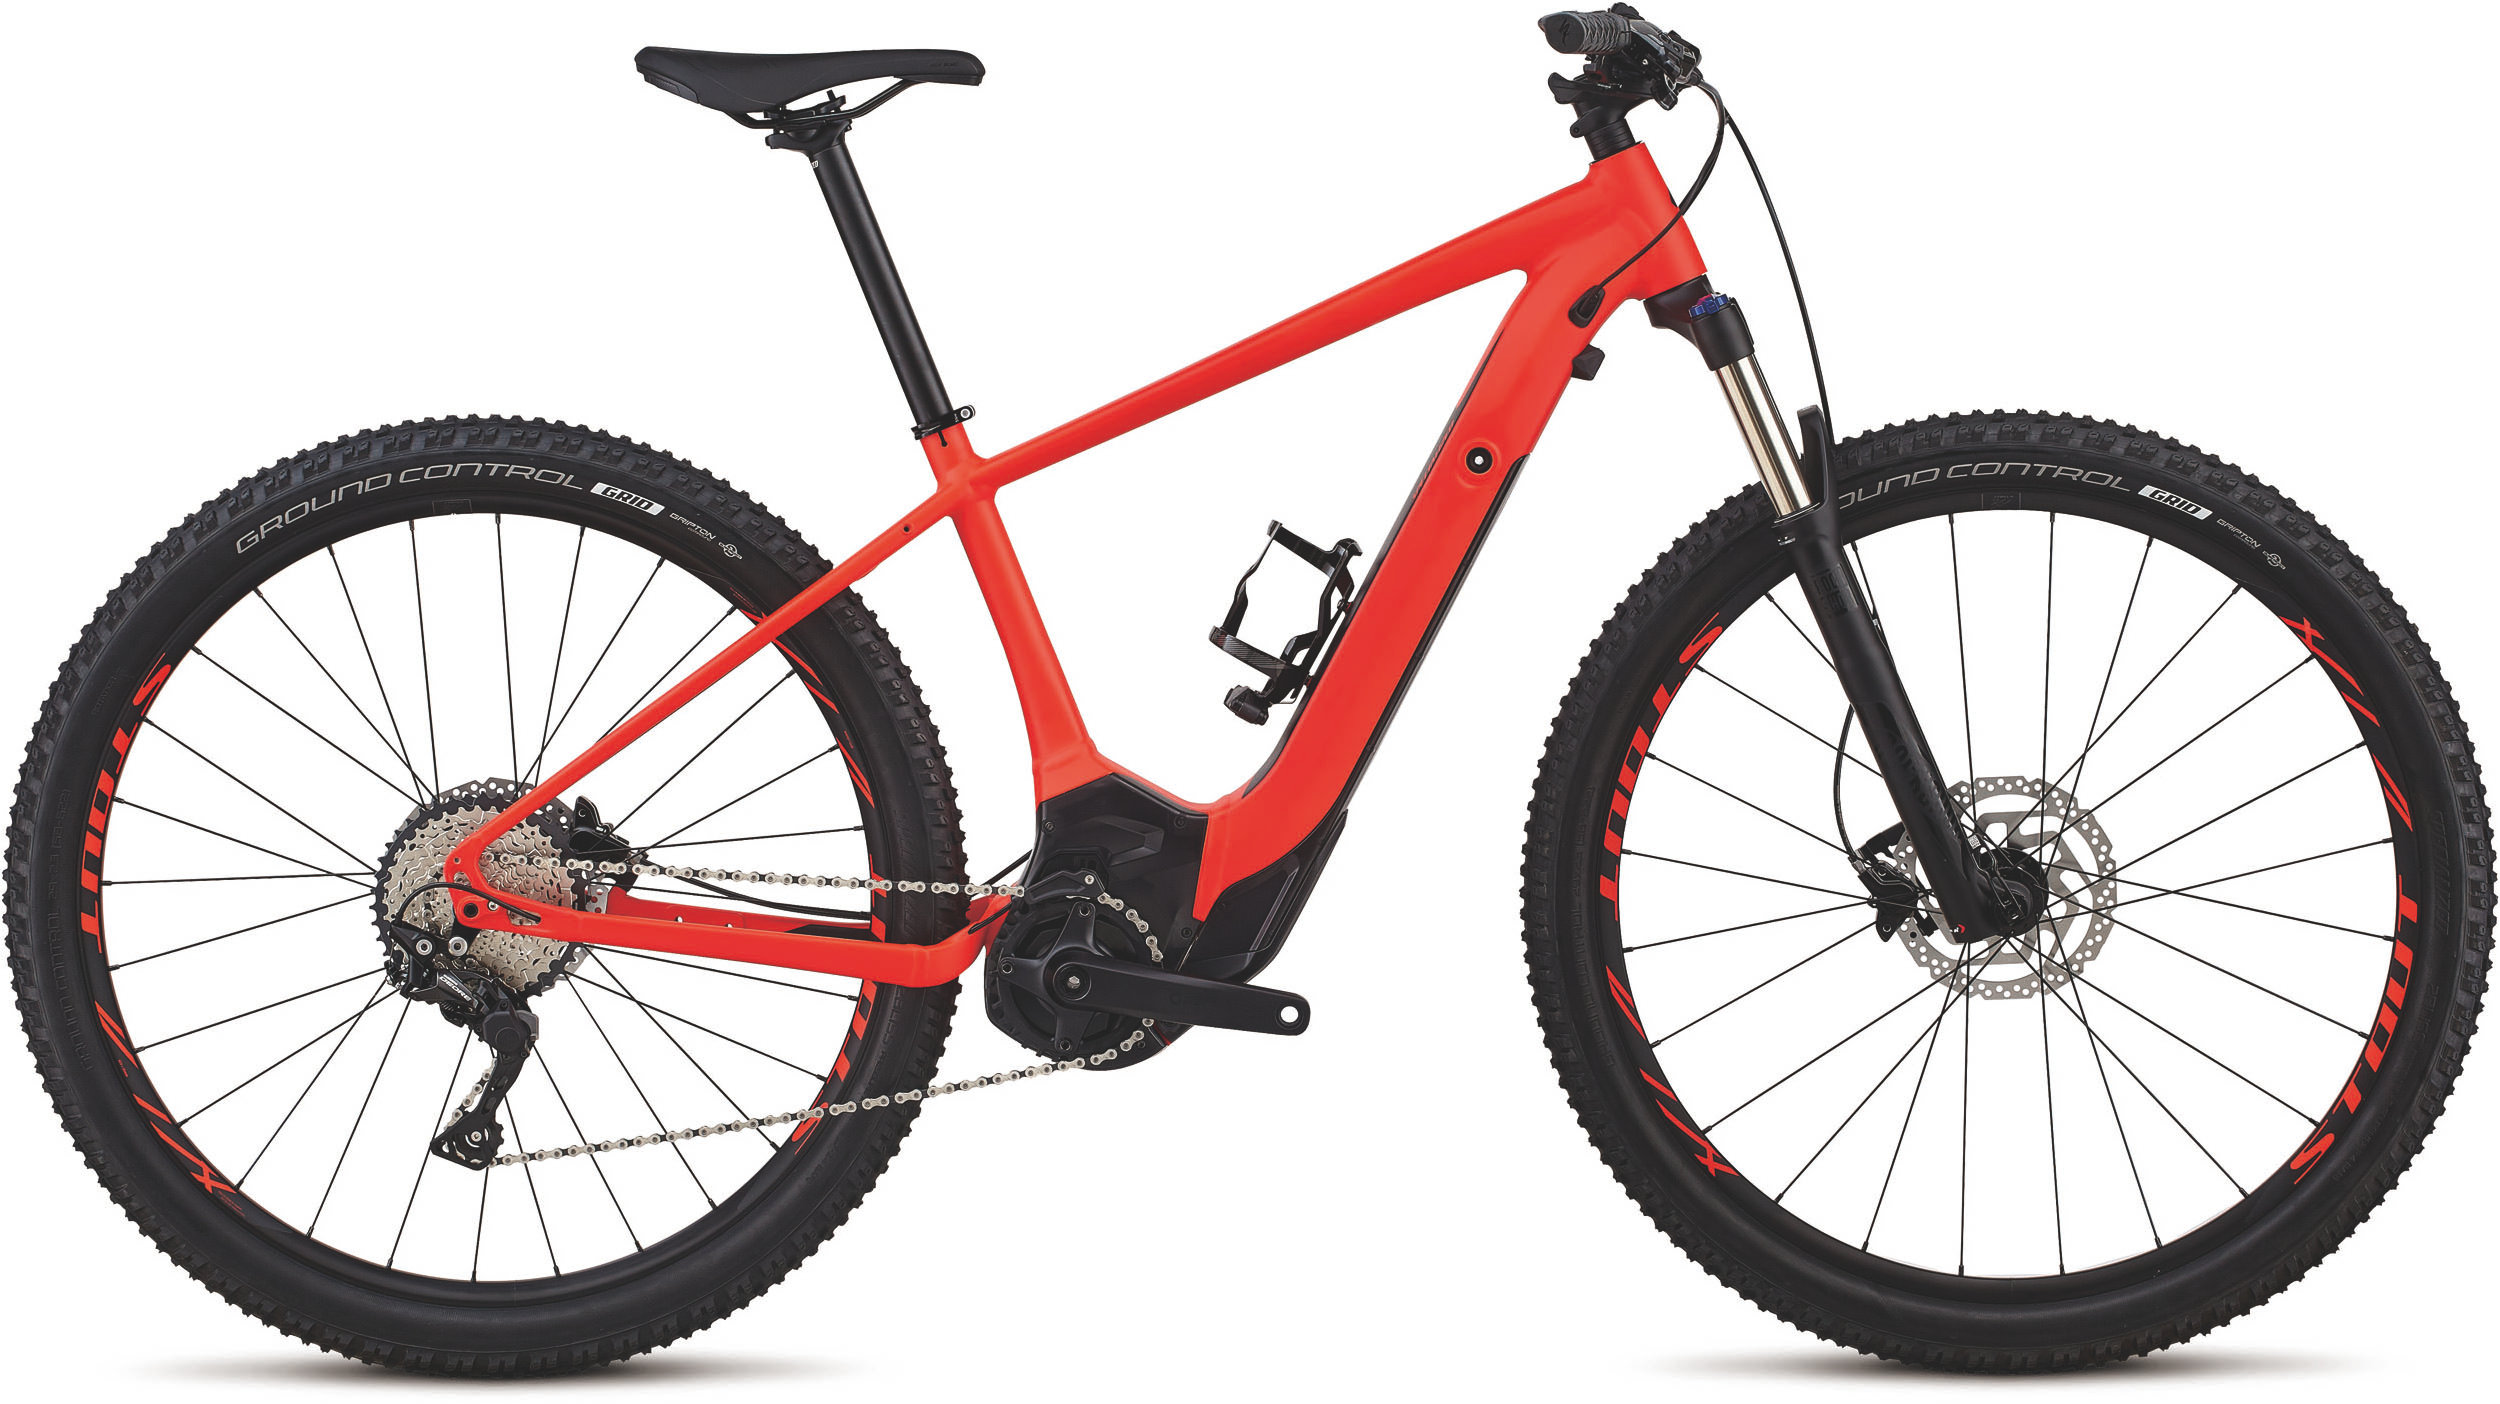 Specialized Men´s Turbo Levo Hardtail 29 Rocket Red / Black XL - Specialized Men´s Turbo Levo Hardtail 29 Rocket Red / Black XL